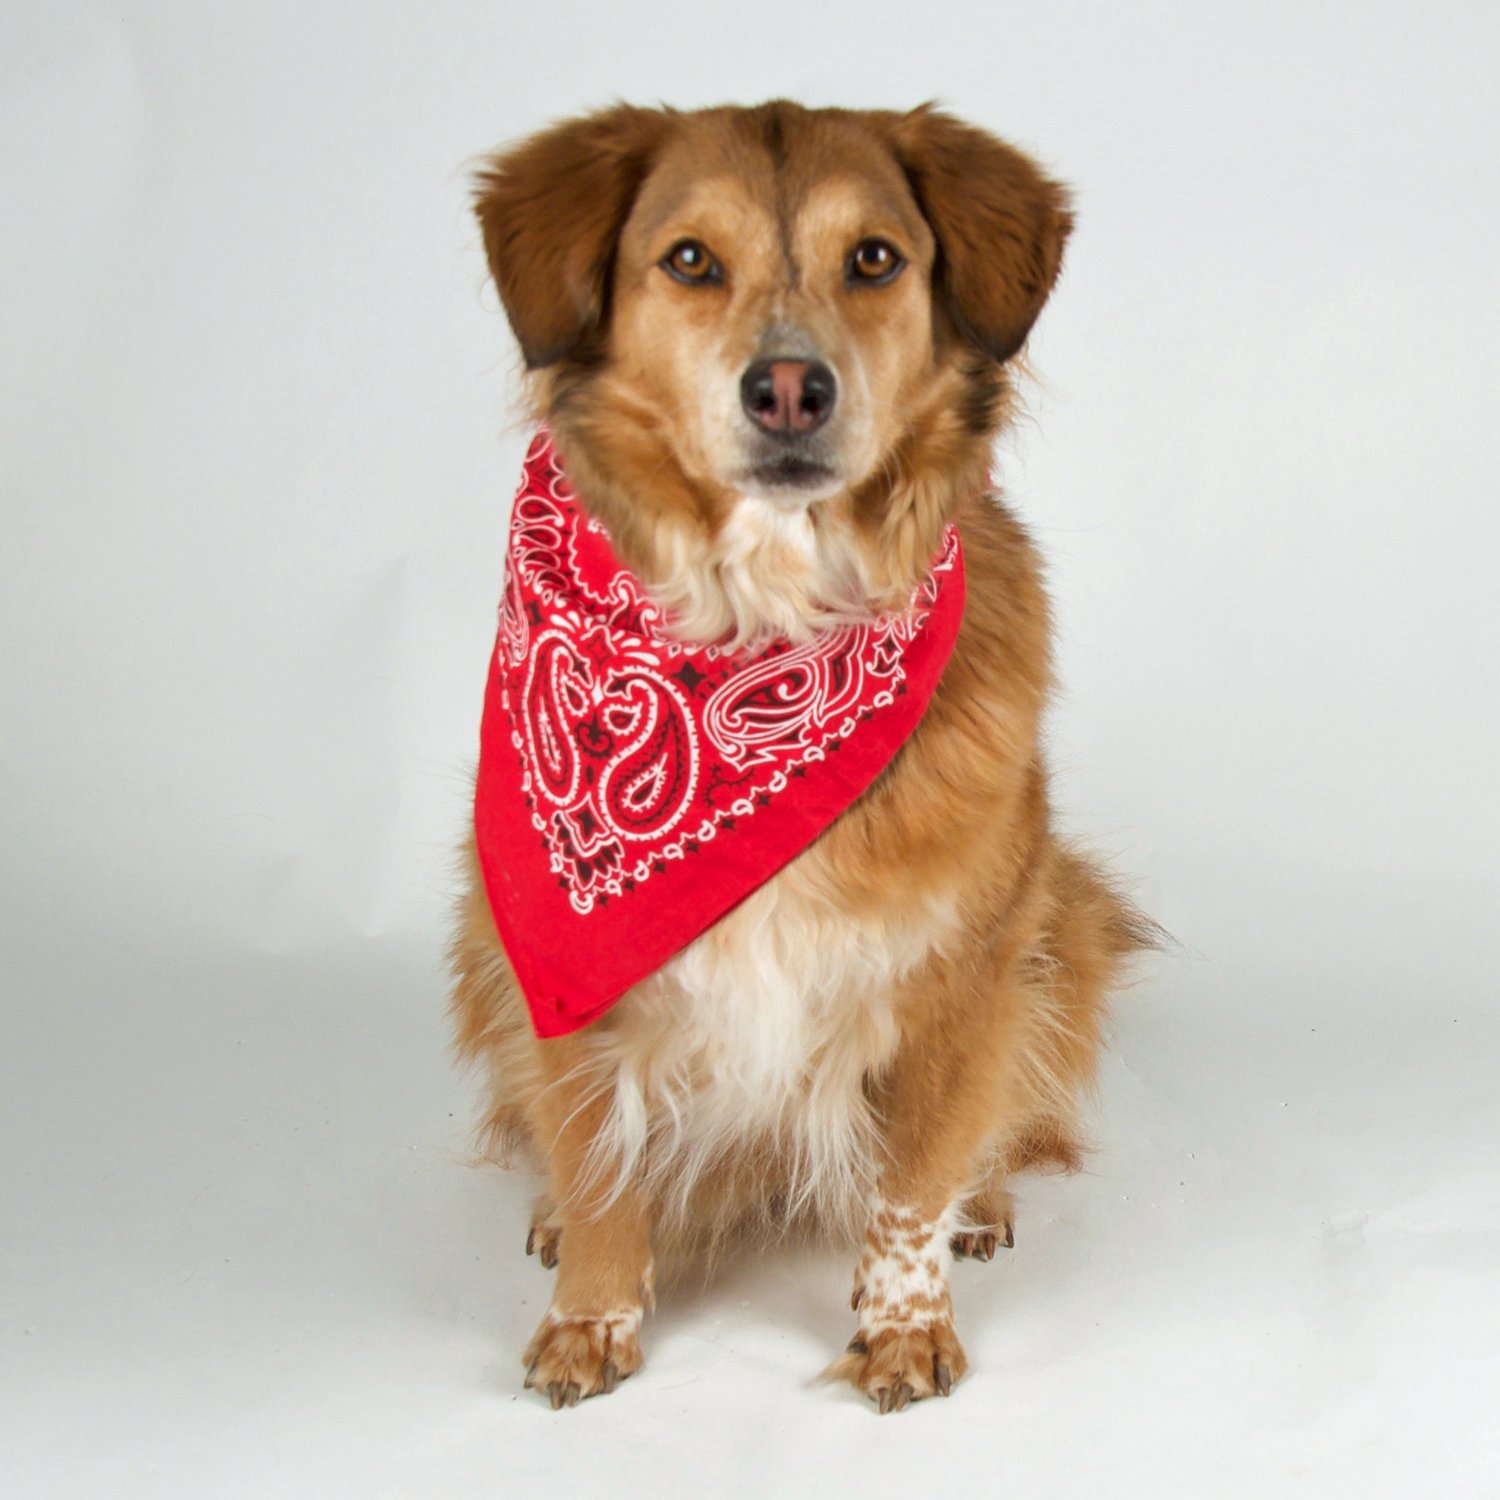 Bandana 3-Pack - Made in USA For 70 Years - Sold by Vets – 100% Cotton –Sewn Edges by OHSAY USA (Image #8)